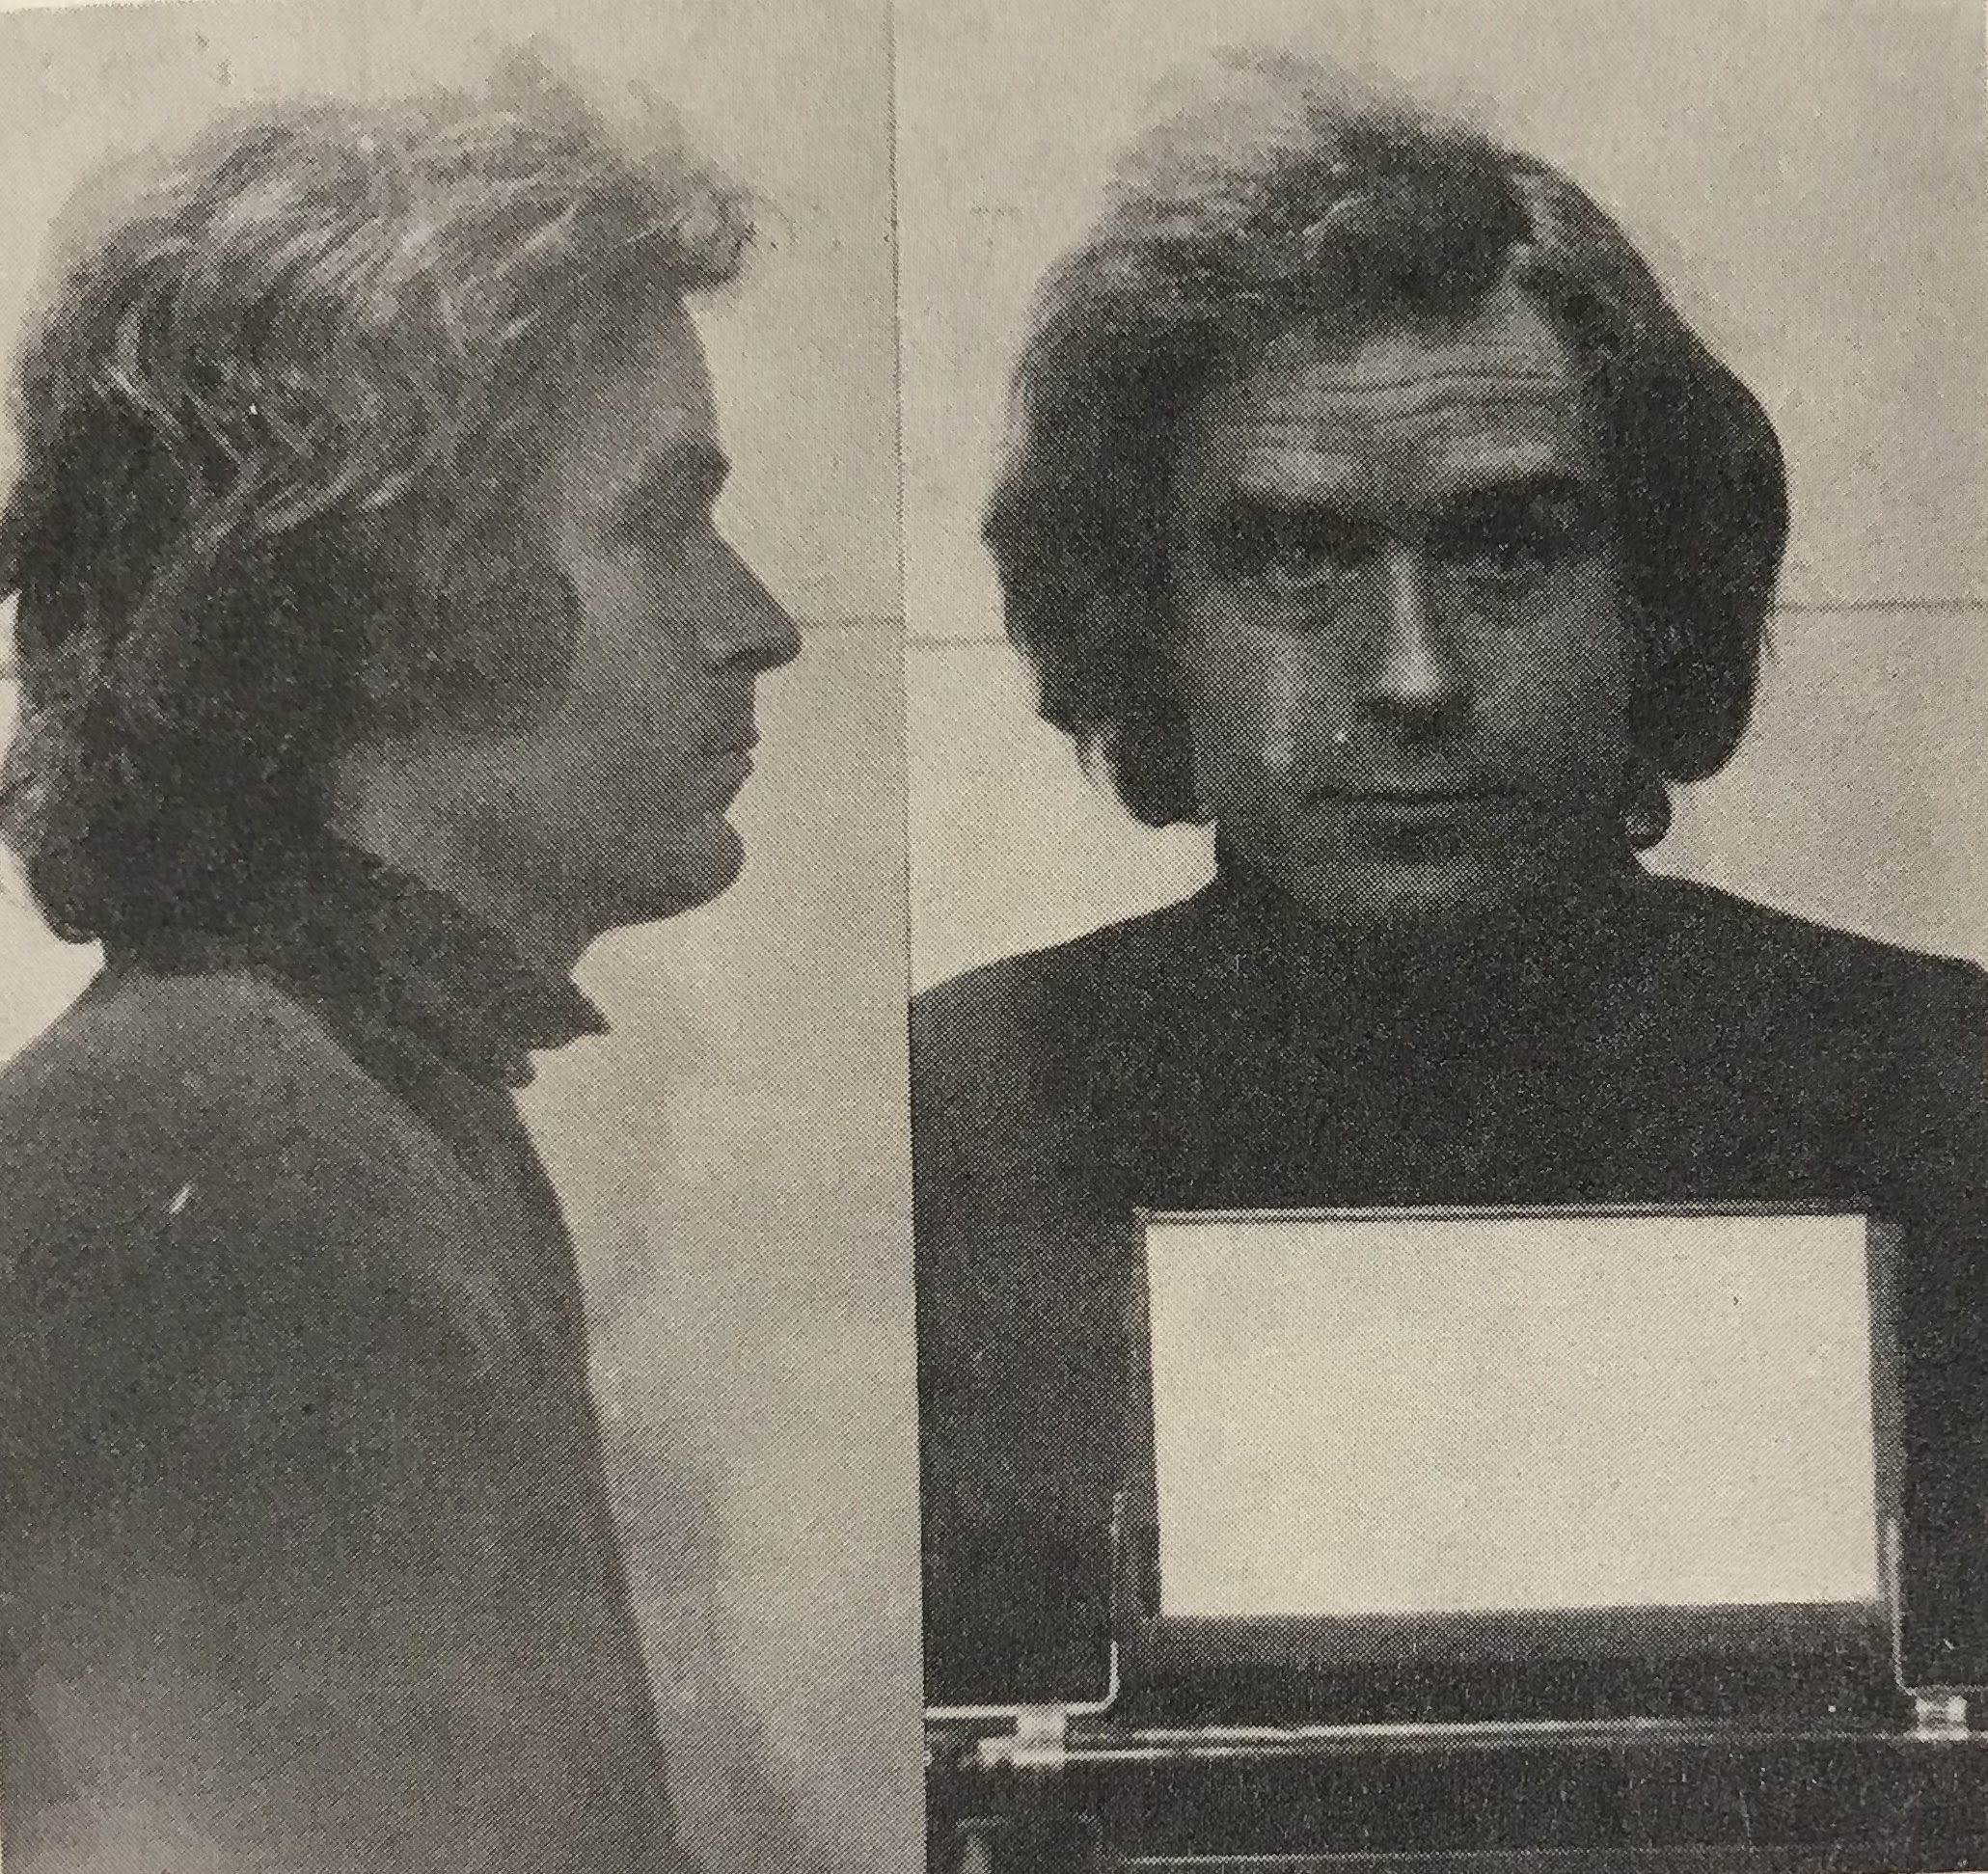 """""""The Very Definition Of Heartless Evil"""": Ted Bundy In"""